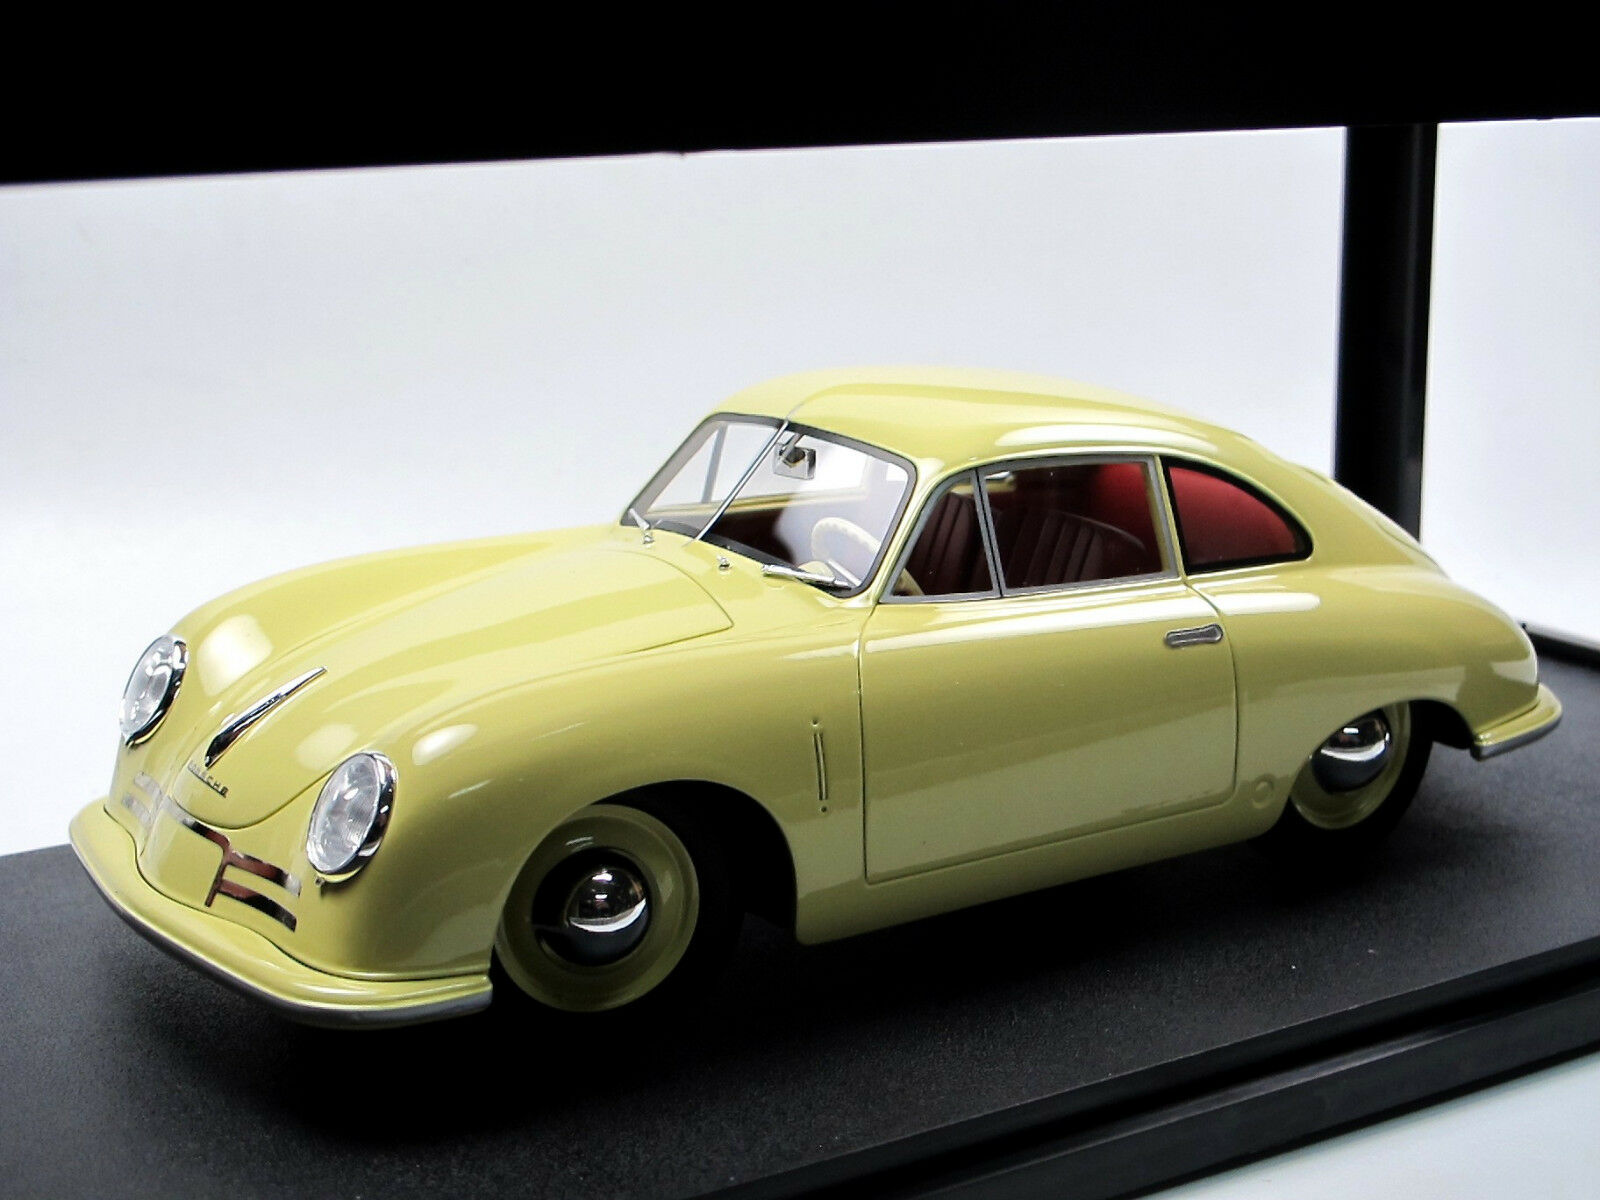 Cult Scale Models 1948 Porsche 356 2 Gmund Coupe Pale Yellow 1 18 Resin Model